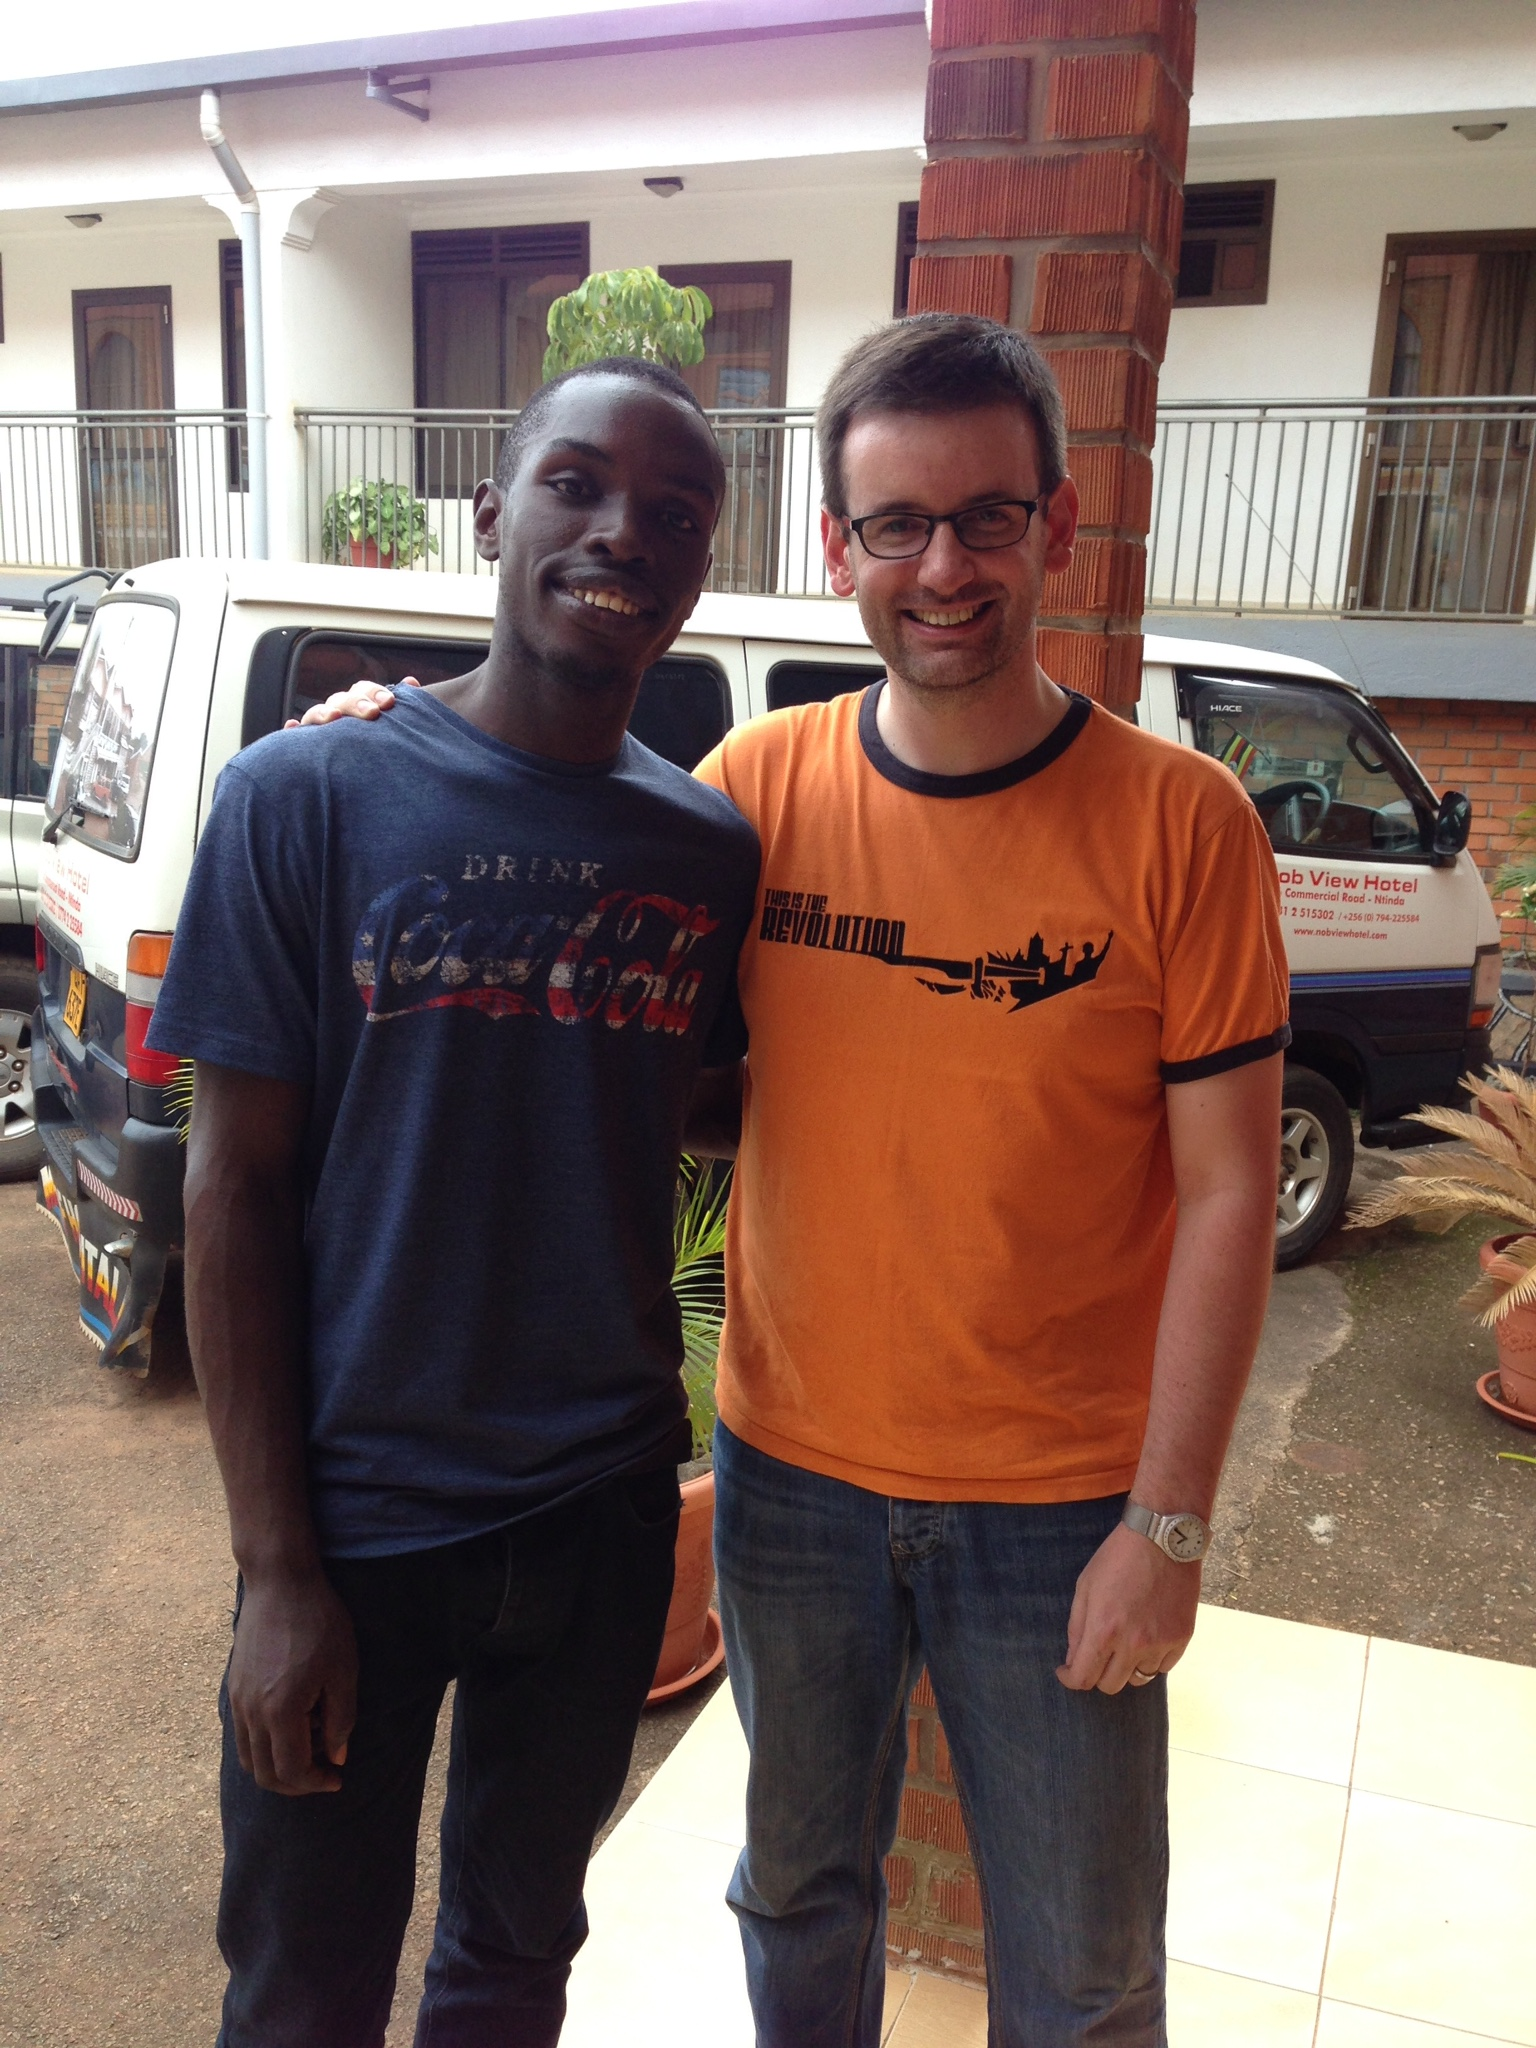 Me and Paul in Uganda, March 2014